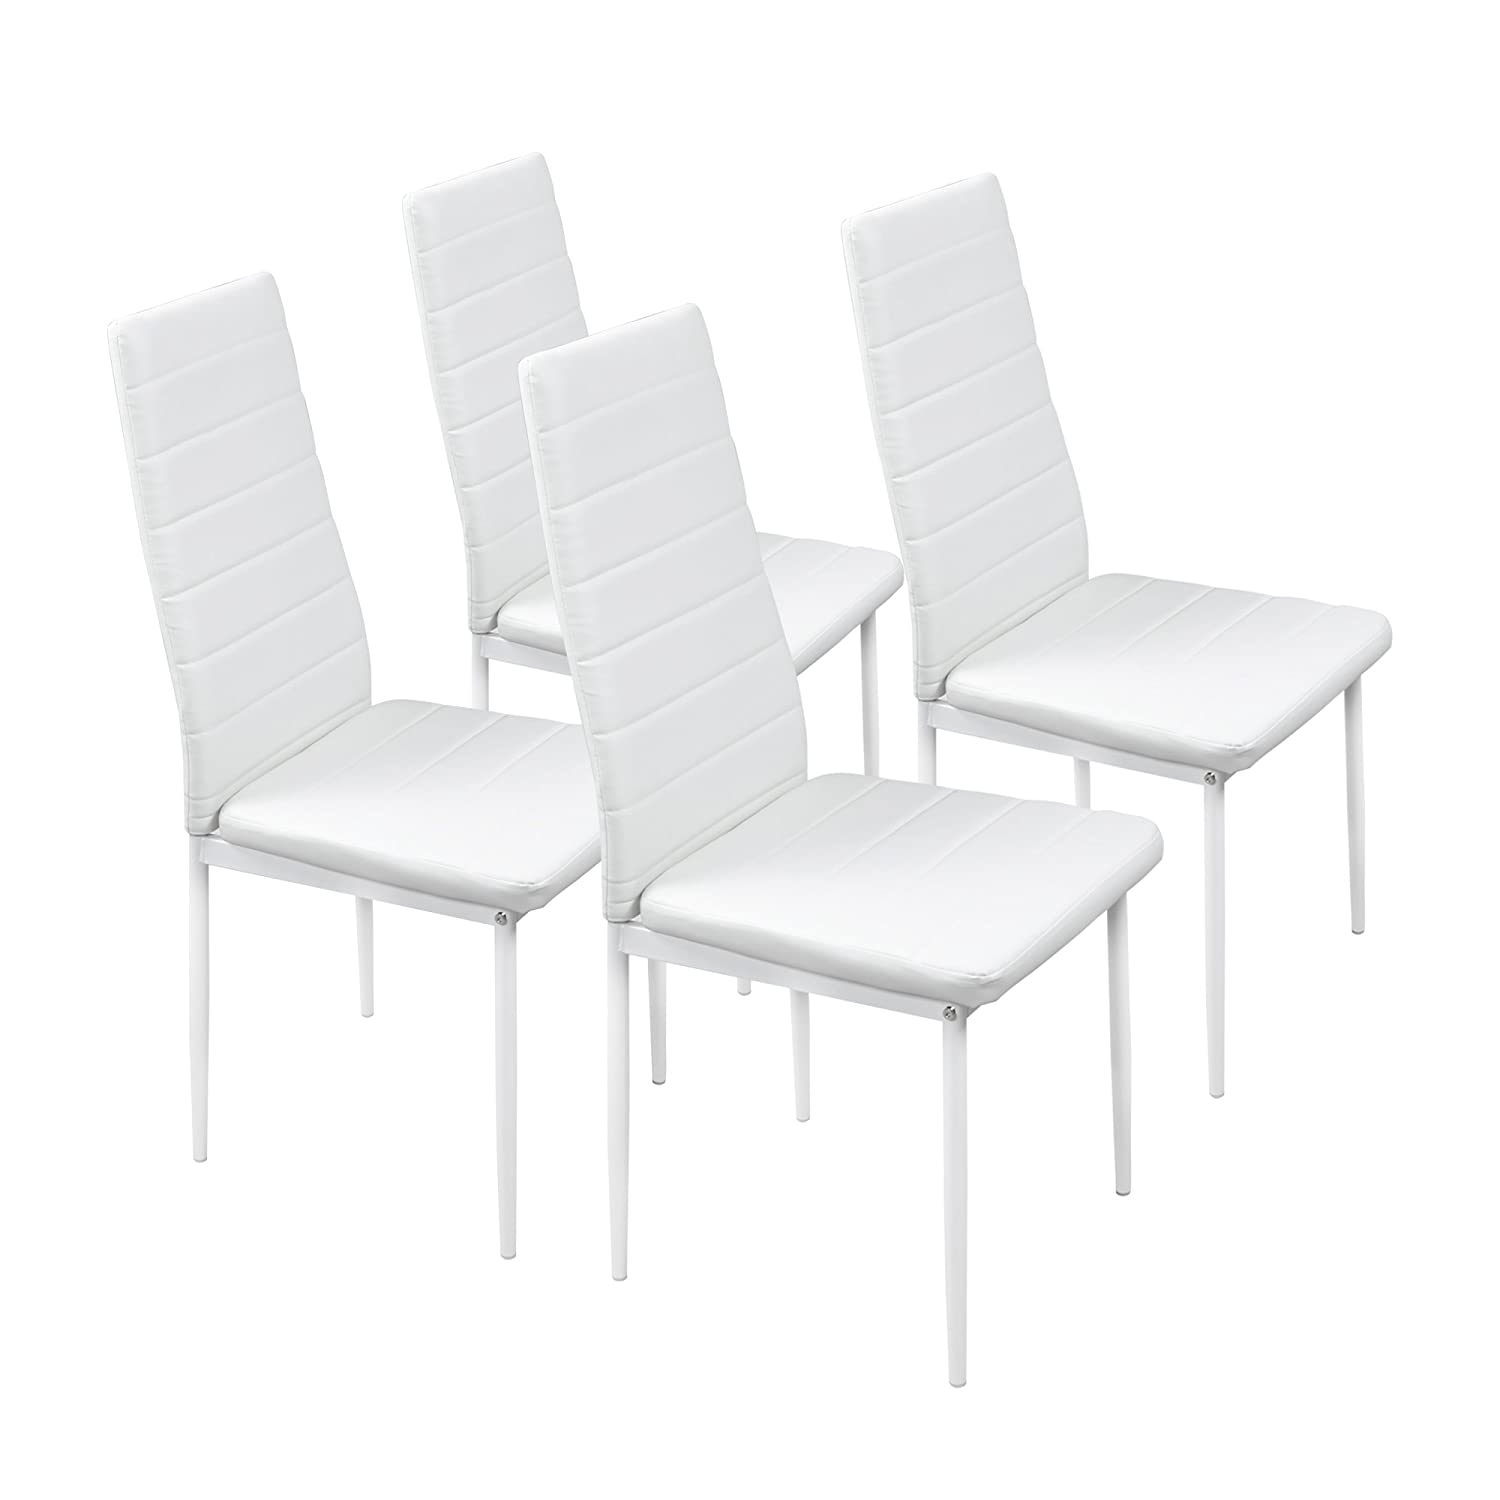 At Home Kitchen Chairs.Fayean Dining Kitchen Chair High Back Foam Padded Seat With Steel Frame Heavy Duty For Home Kitchen Room Furniture Set Of 4 White